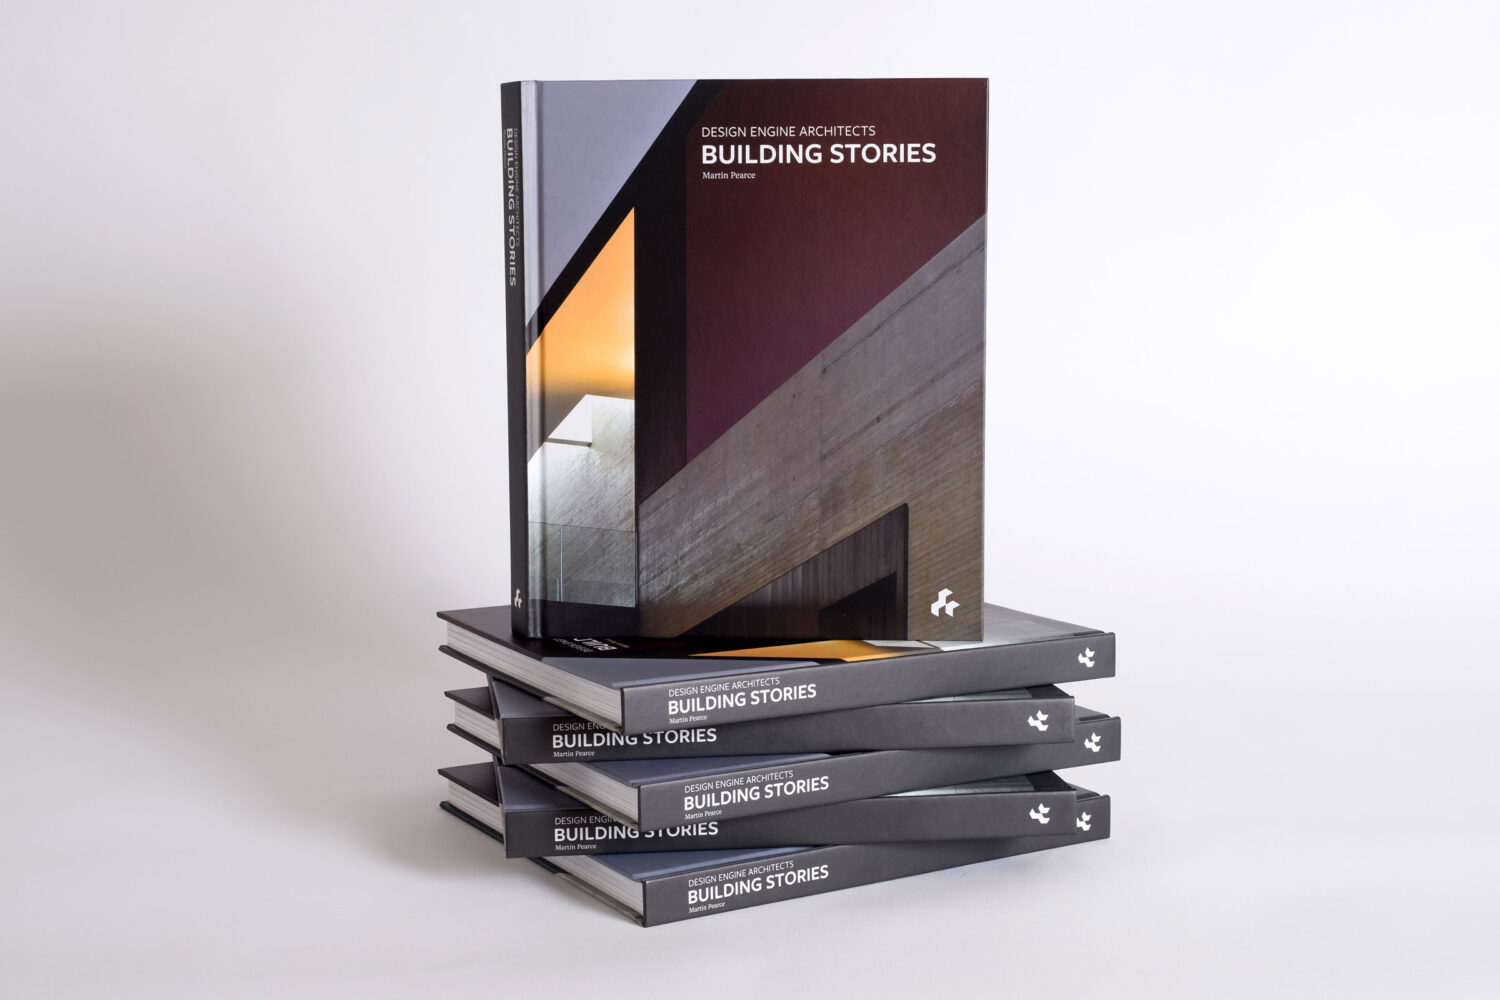 Design Engine Architects Building Stories Book Cover and Spine by Martin Pearce